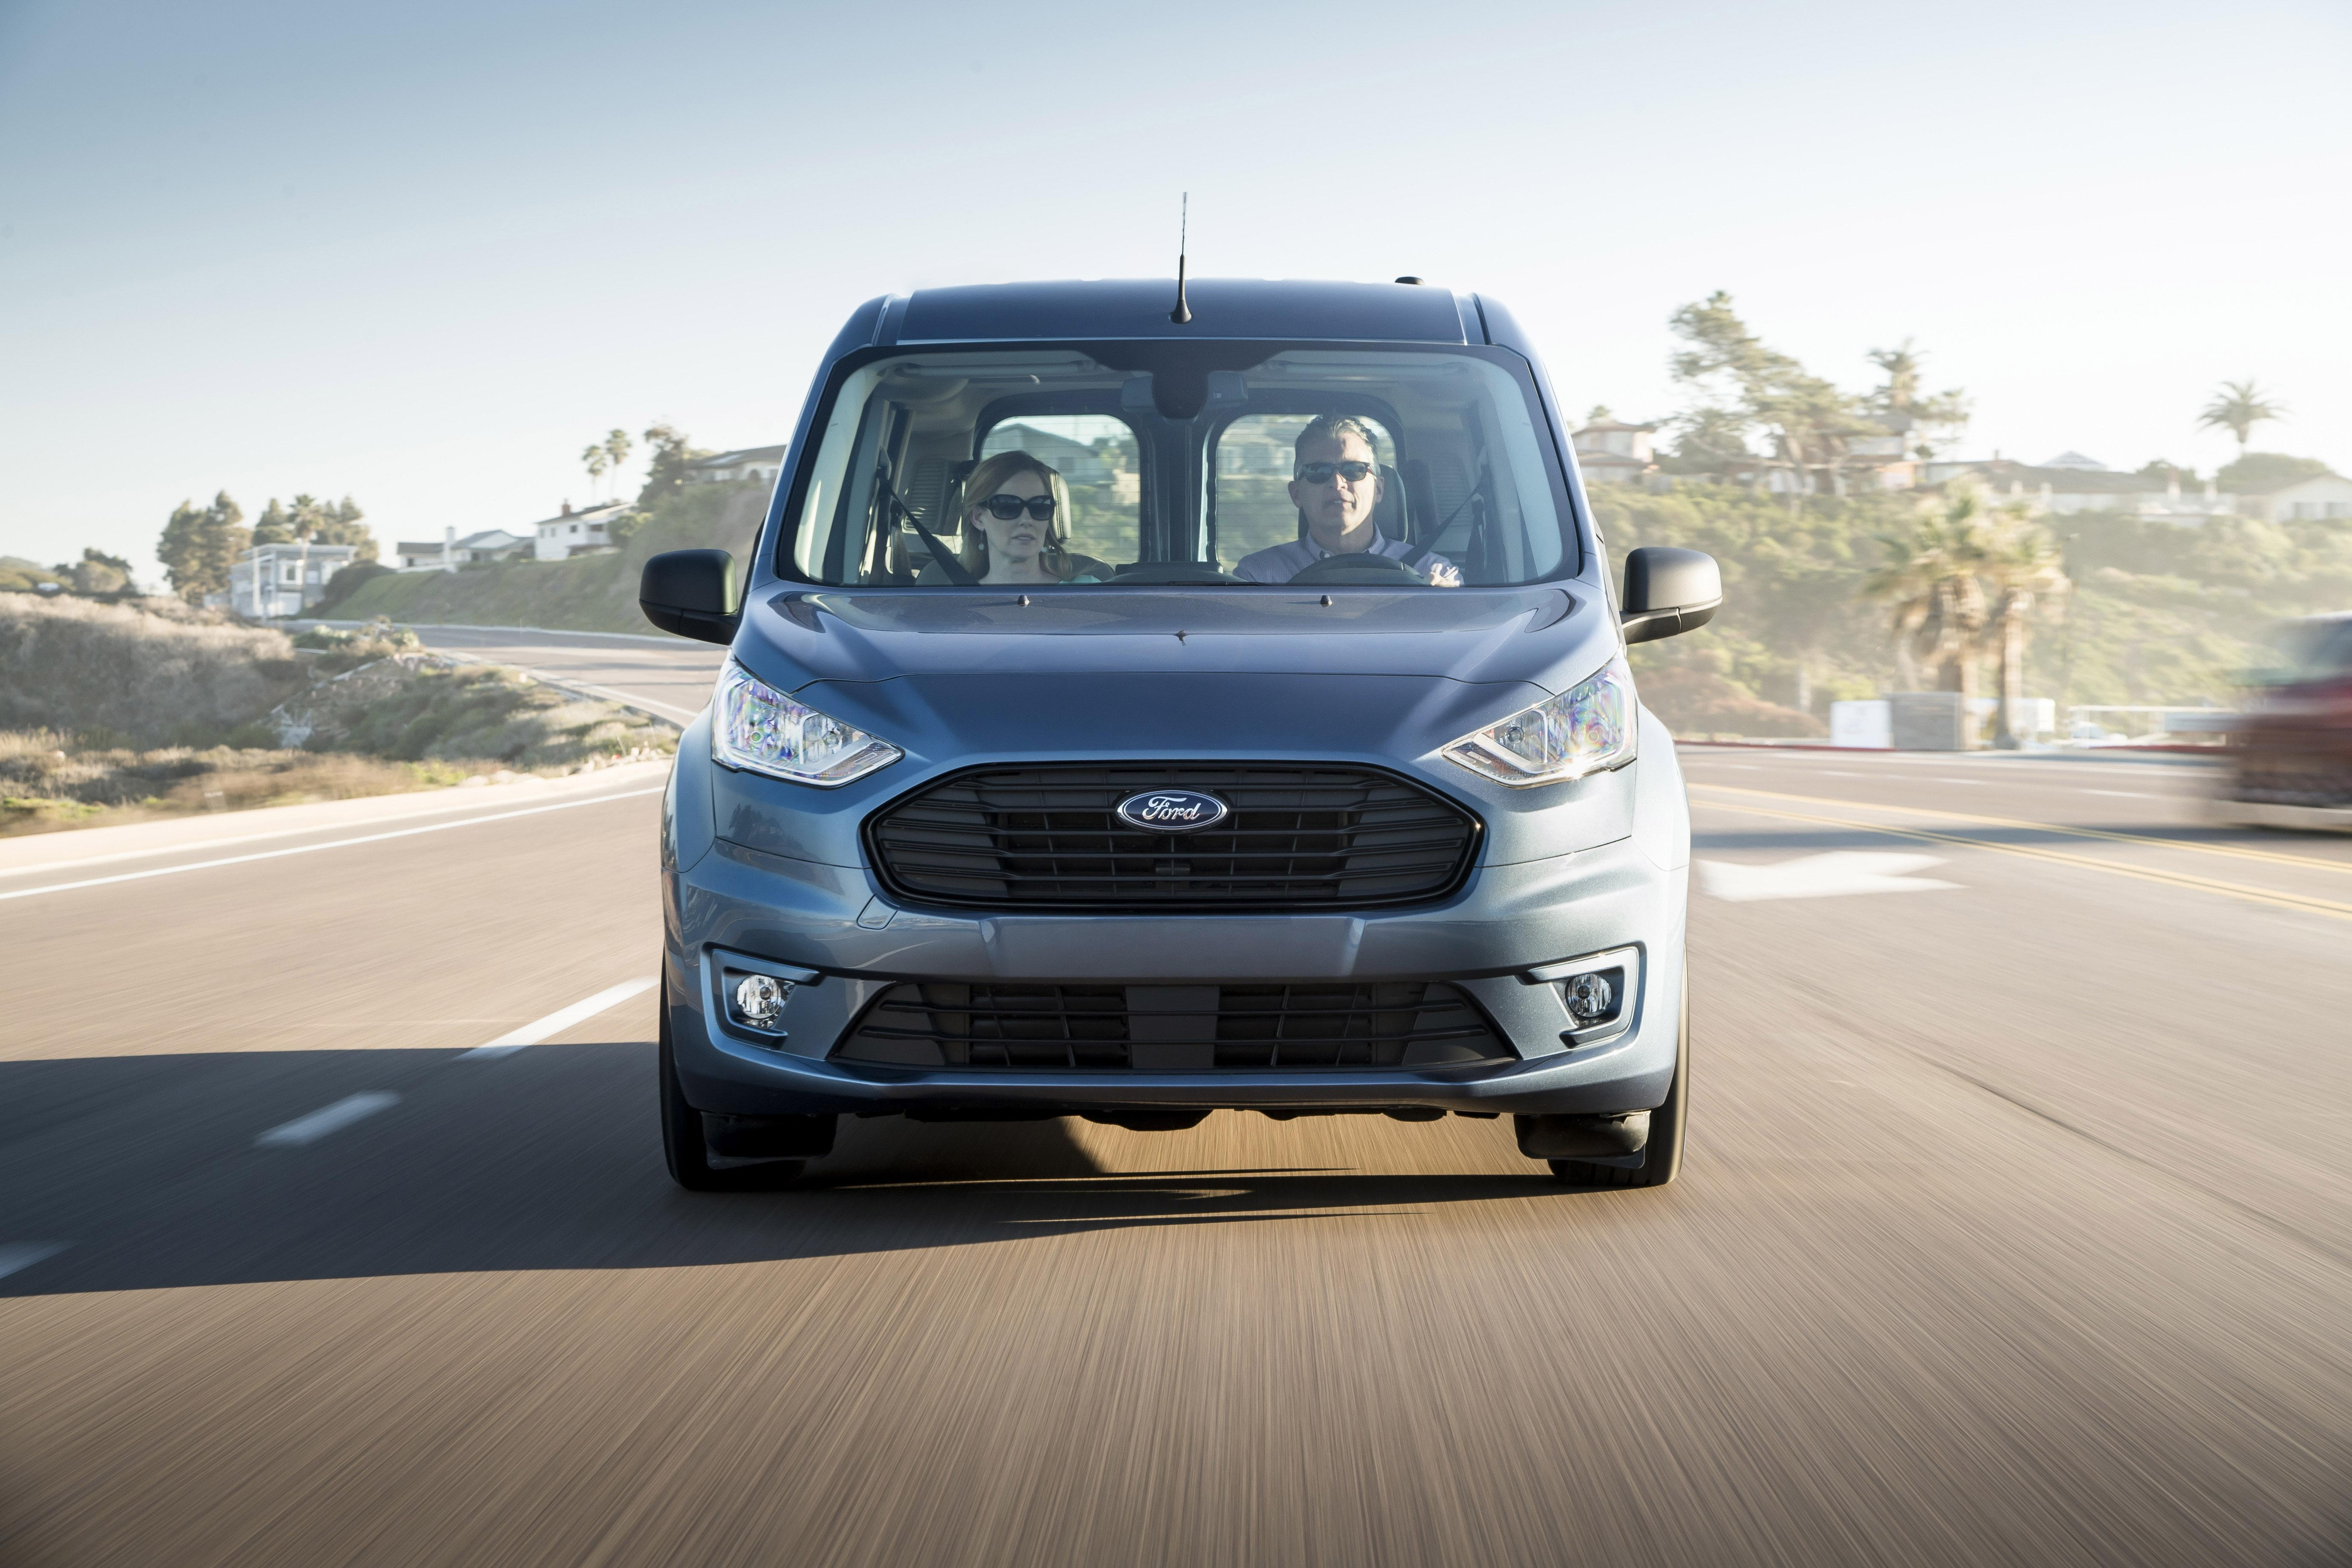 b07666ceb5 Get an in-depth look at the specs differences between the Ford Transit and  Ford Transit Connect cargo vans